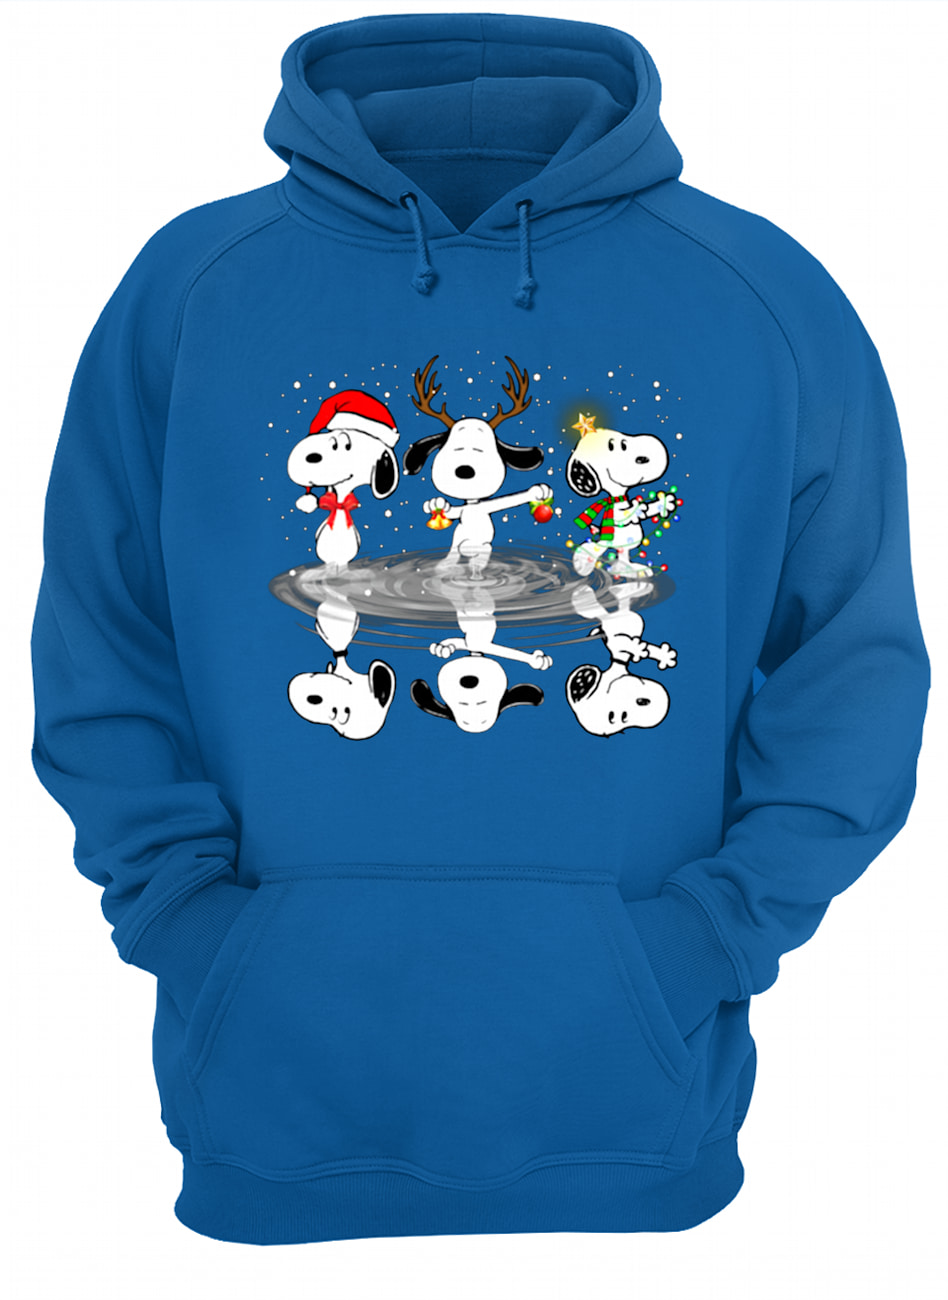 Peanuts snoopy water reflection mirror christmas hoodie